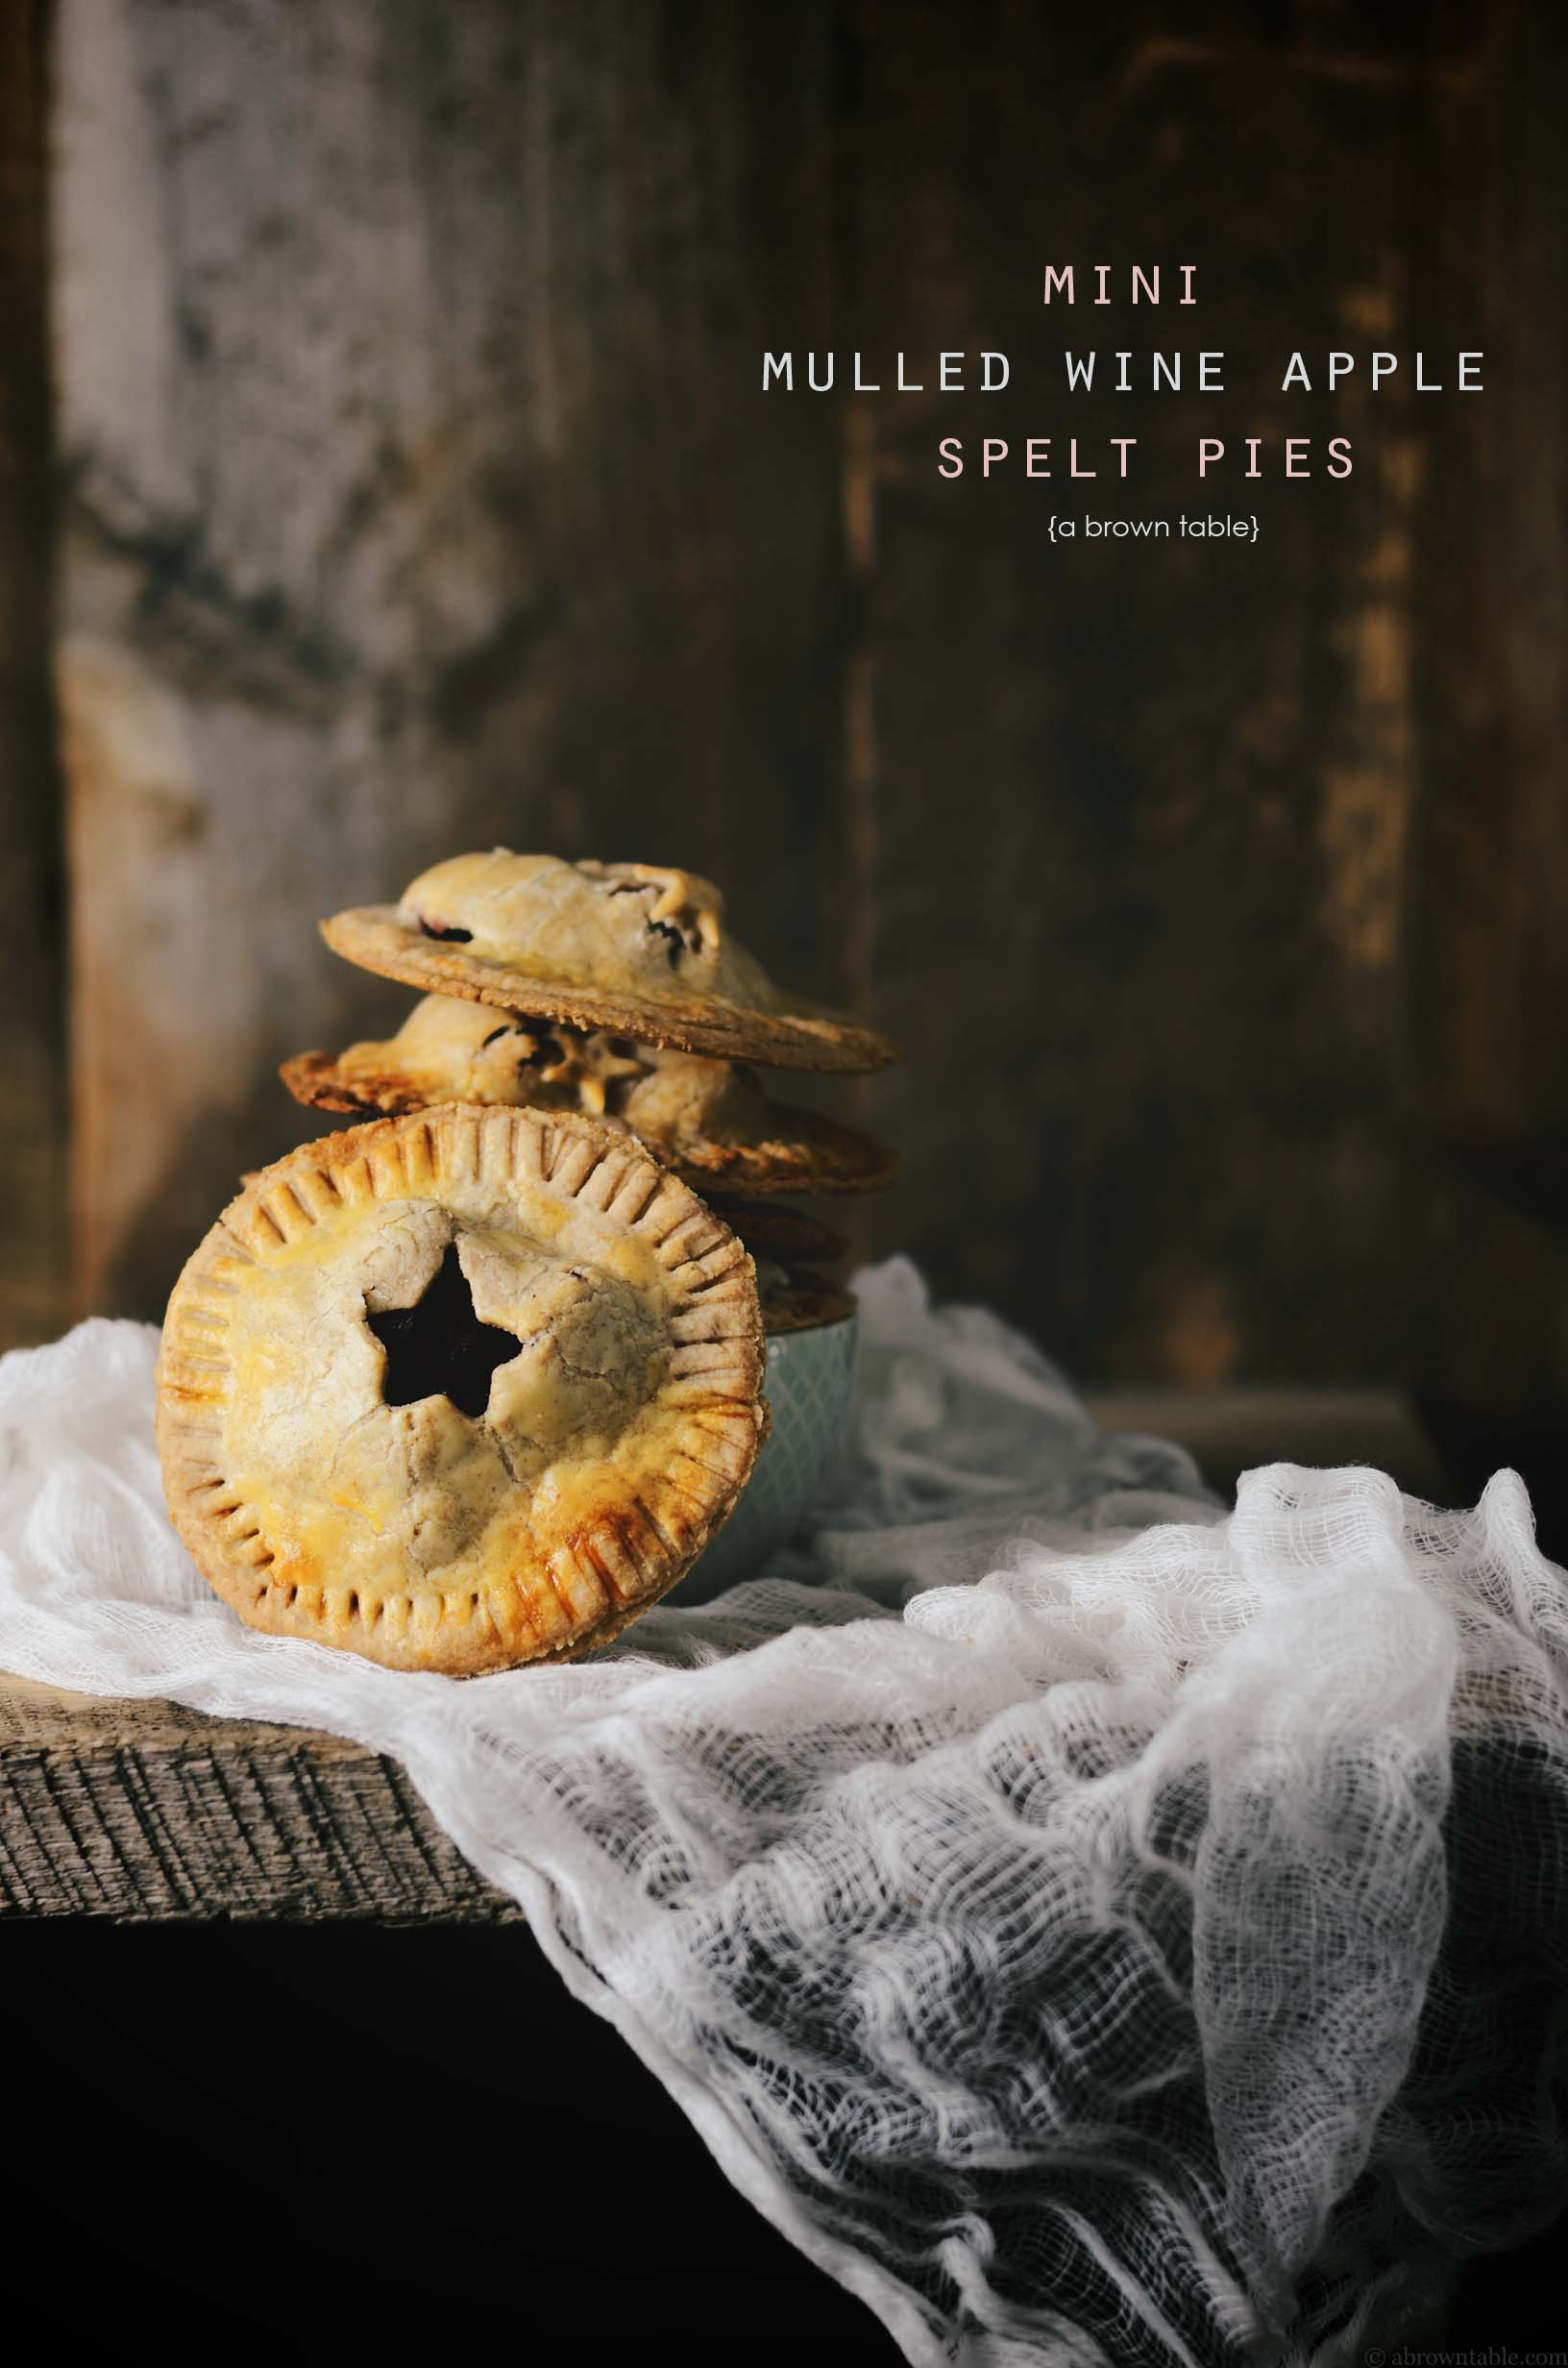 mulled wine apple pies with spelt